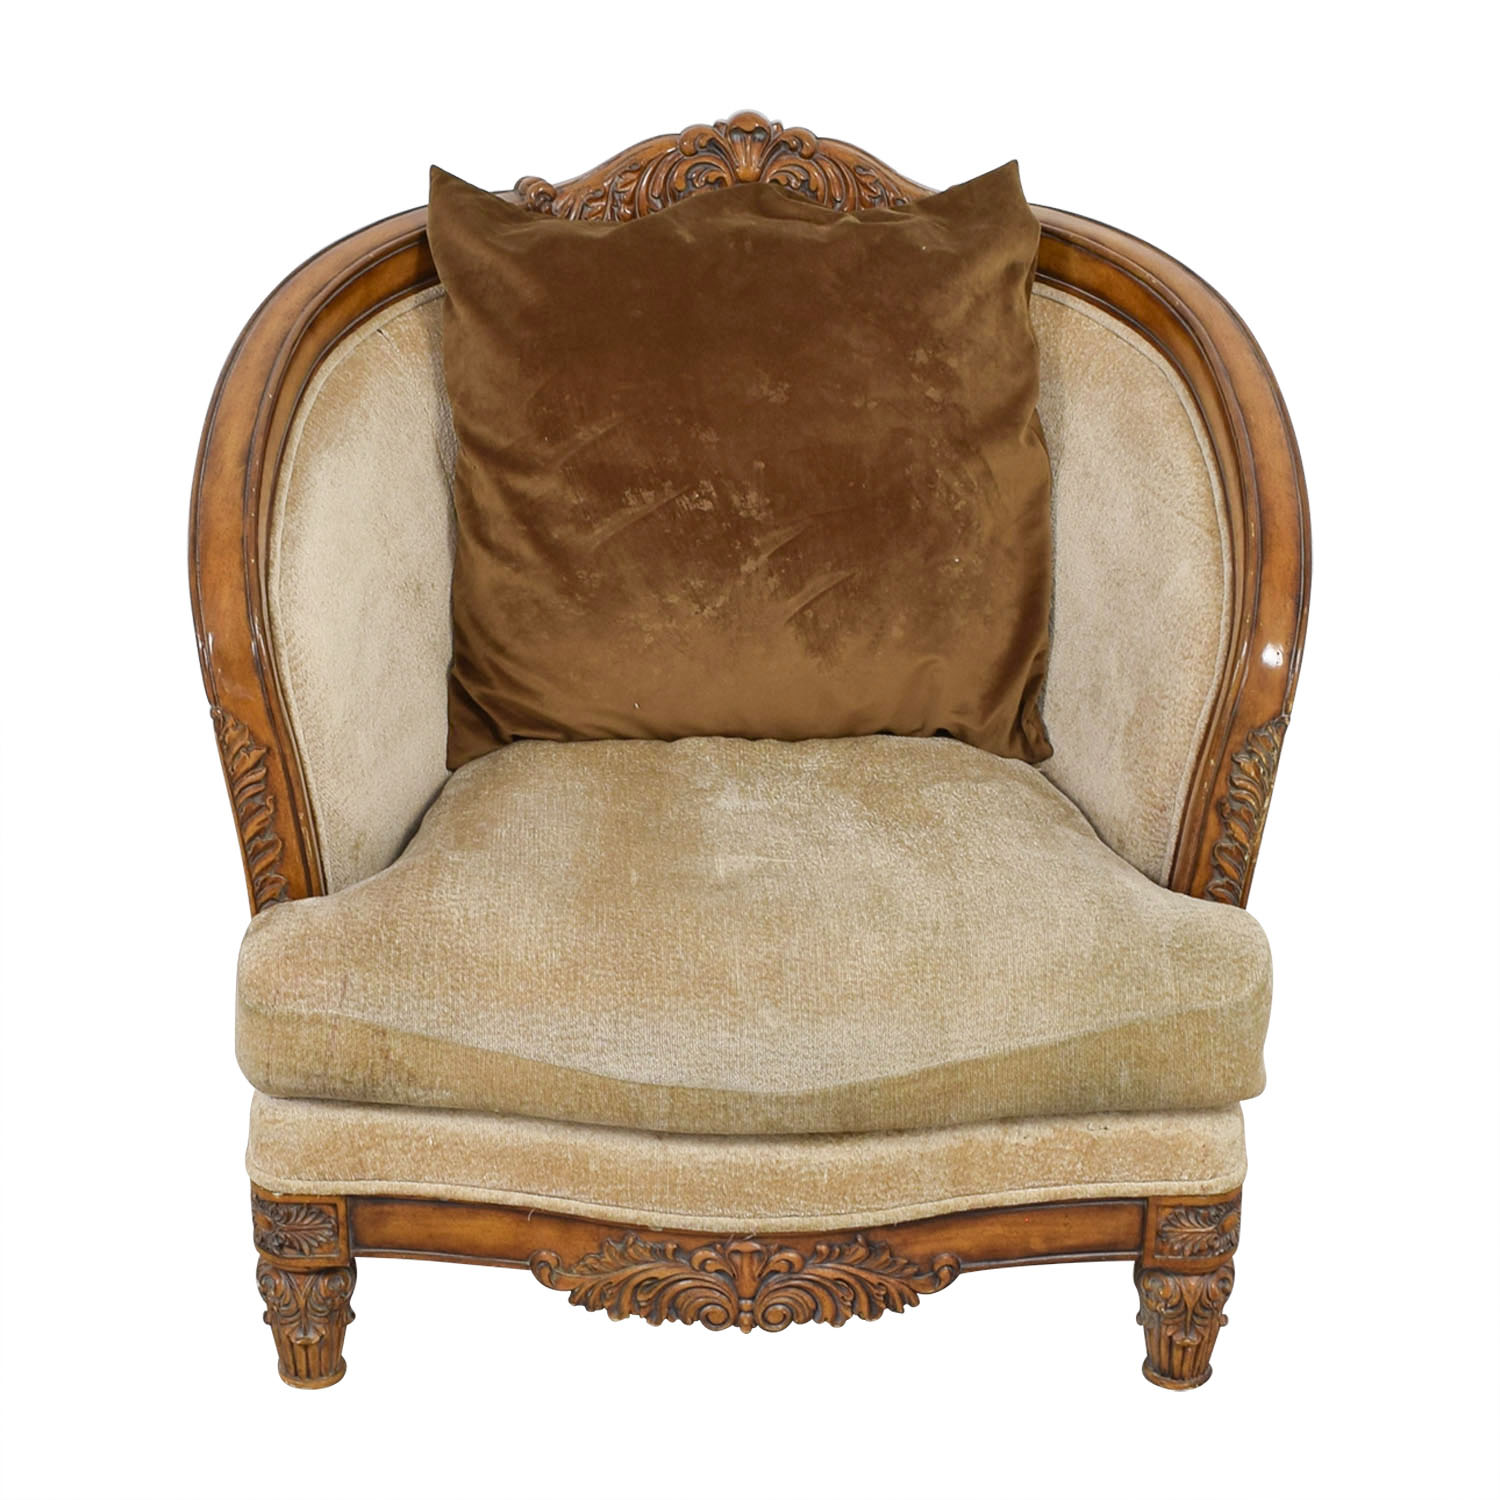 buy  Beige Upholstered and Wood Accent Chair online